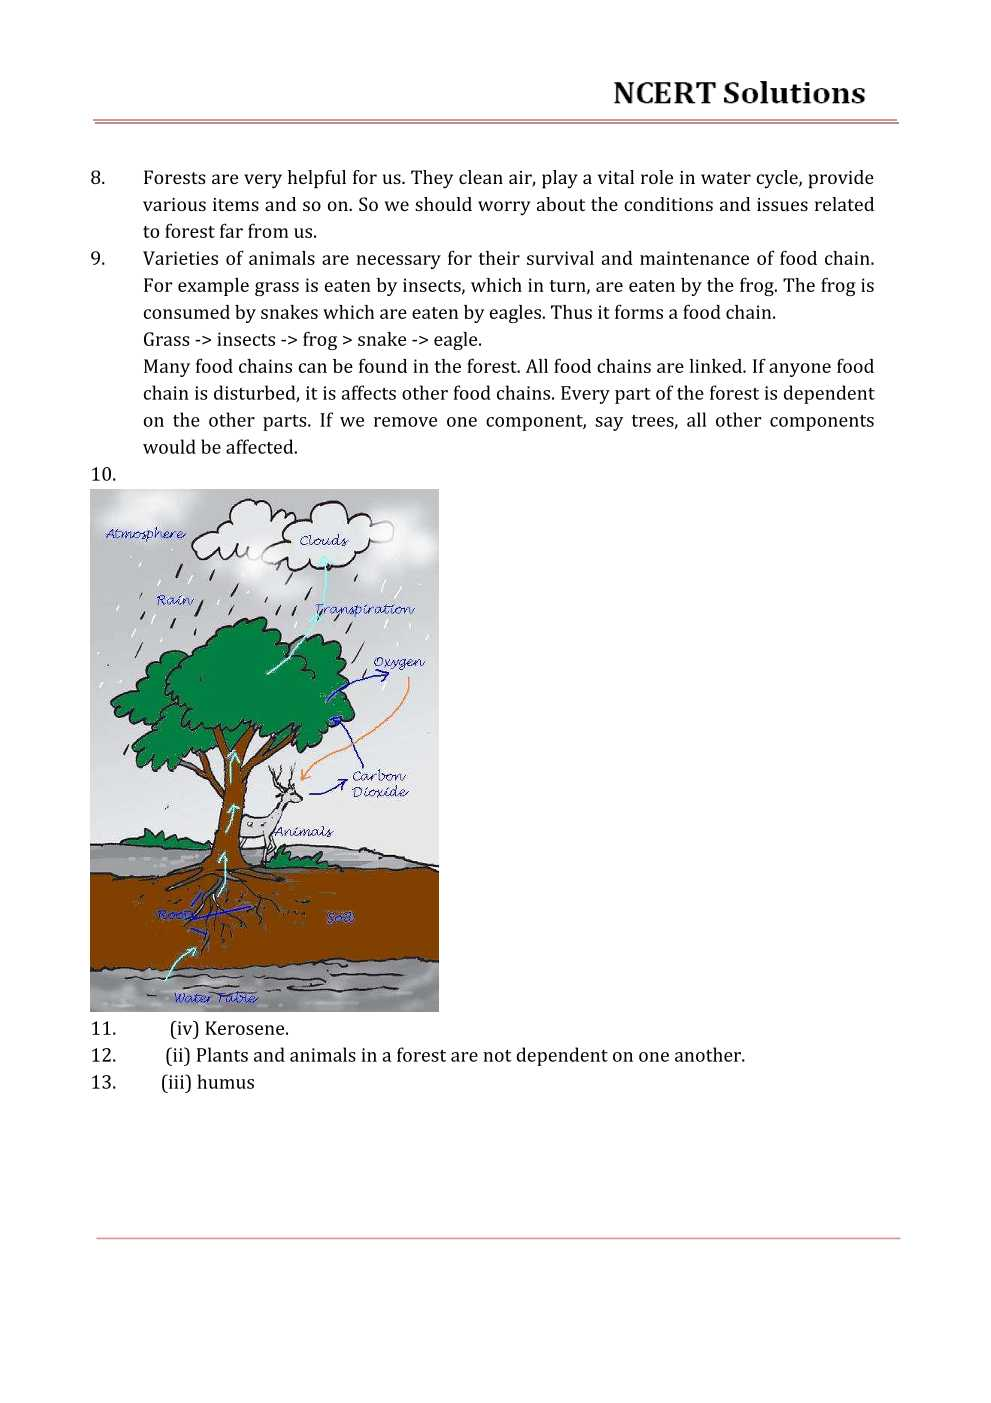 NCERT Solutions For Class 7 science Chapter 17 Forests – Our Lifeline